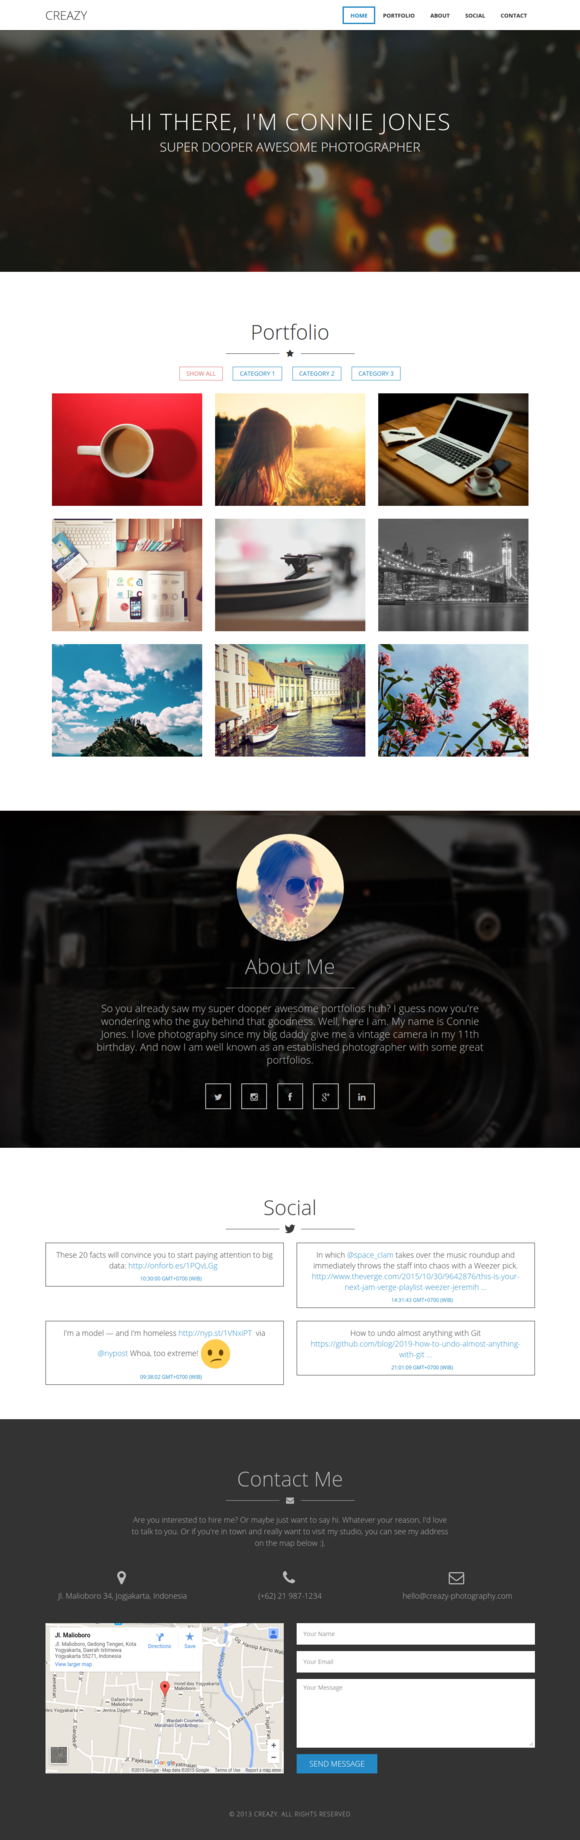 Creazy Responsive HTML Template